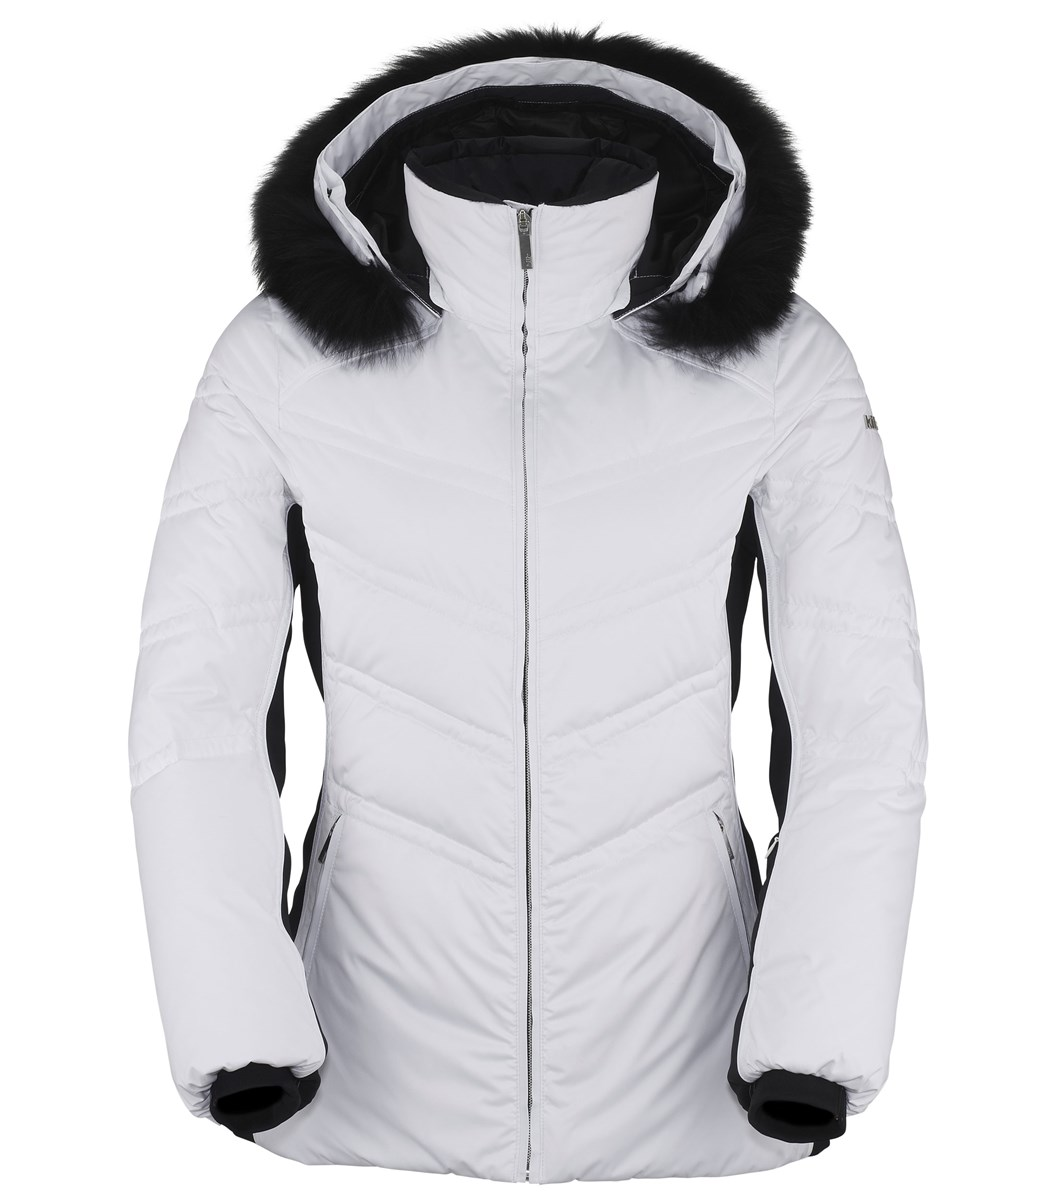 Killy Chic II Womens Down Ski Jacket in White - The Ski Shop £359.97 907b1a7f4